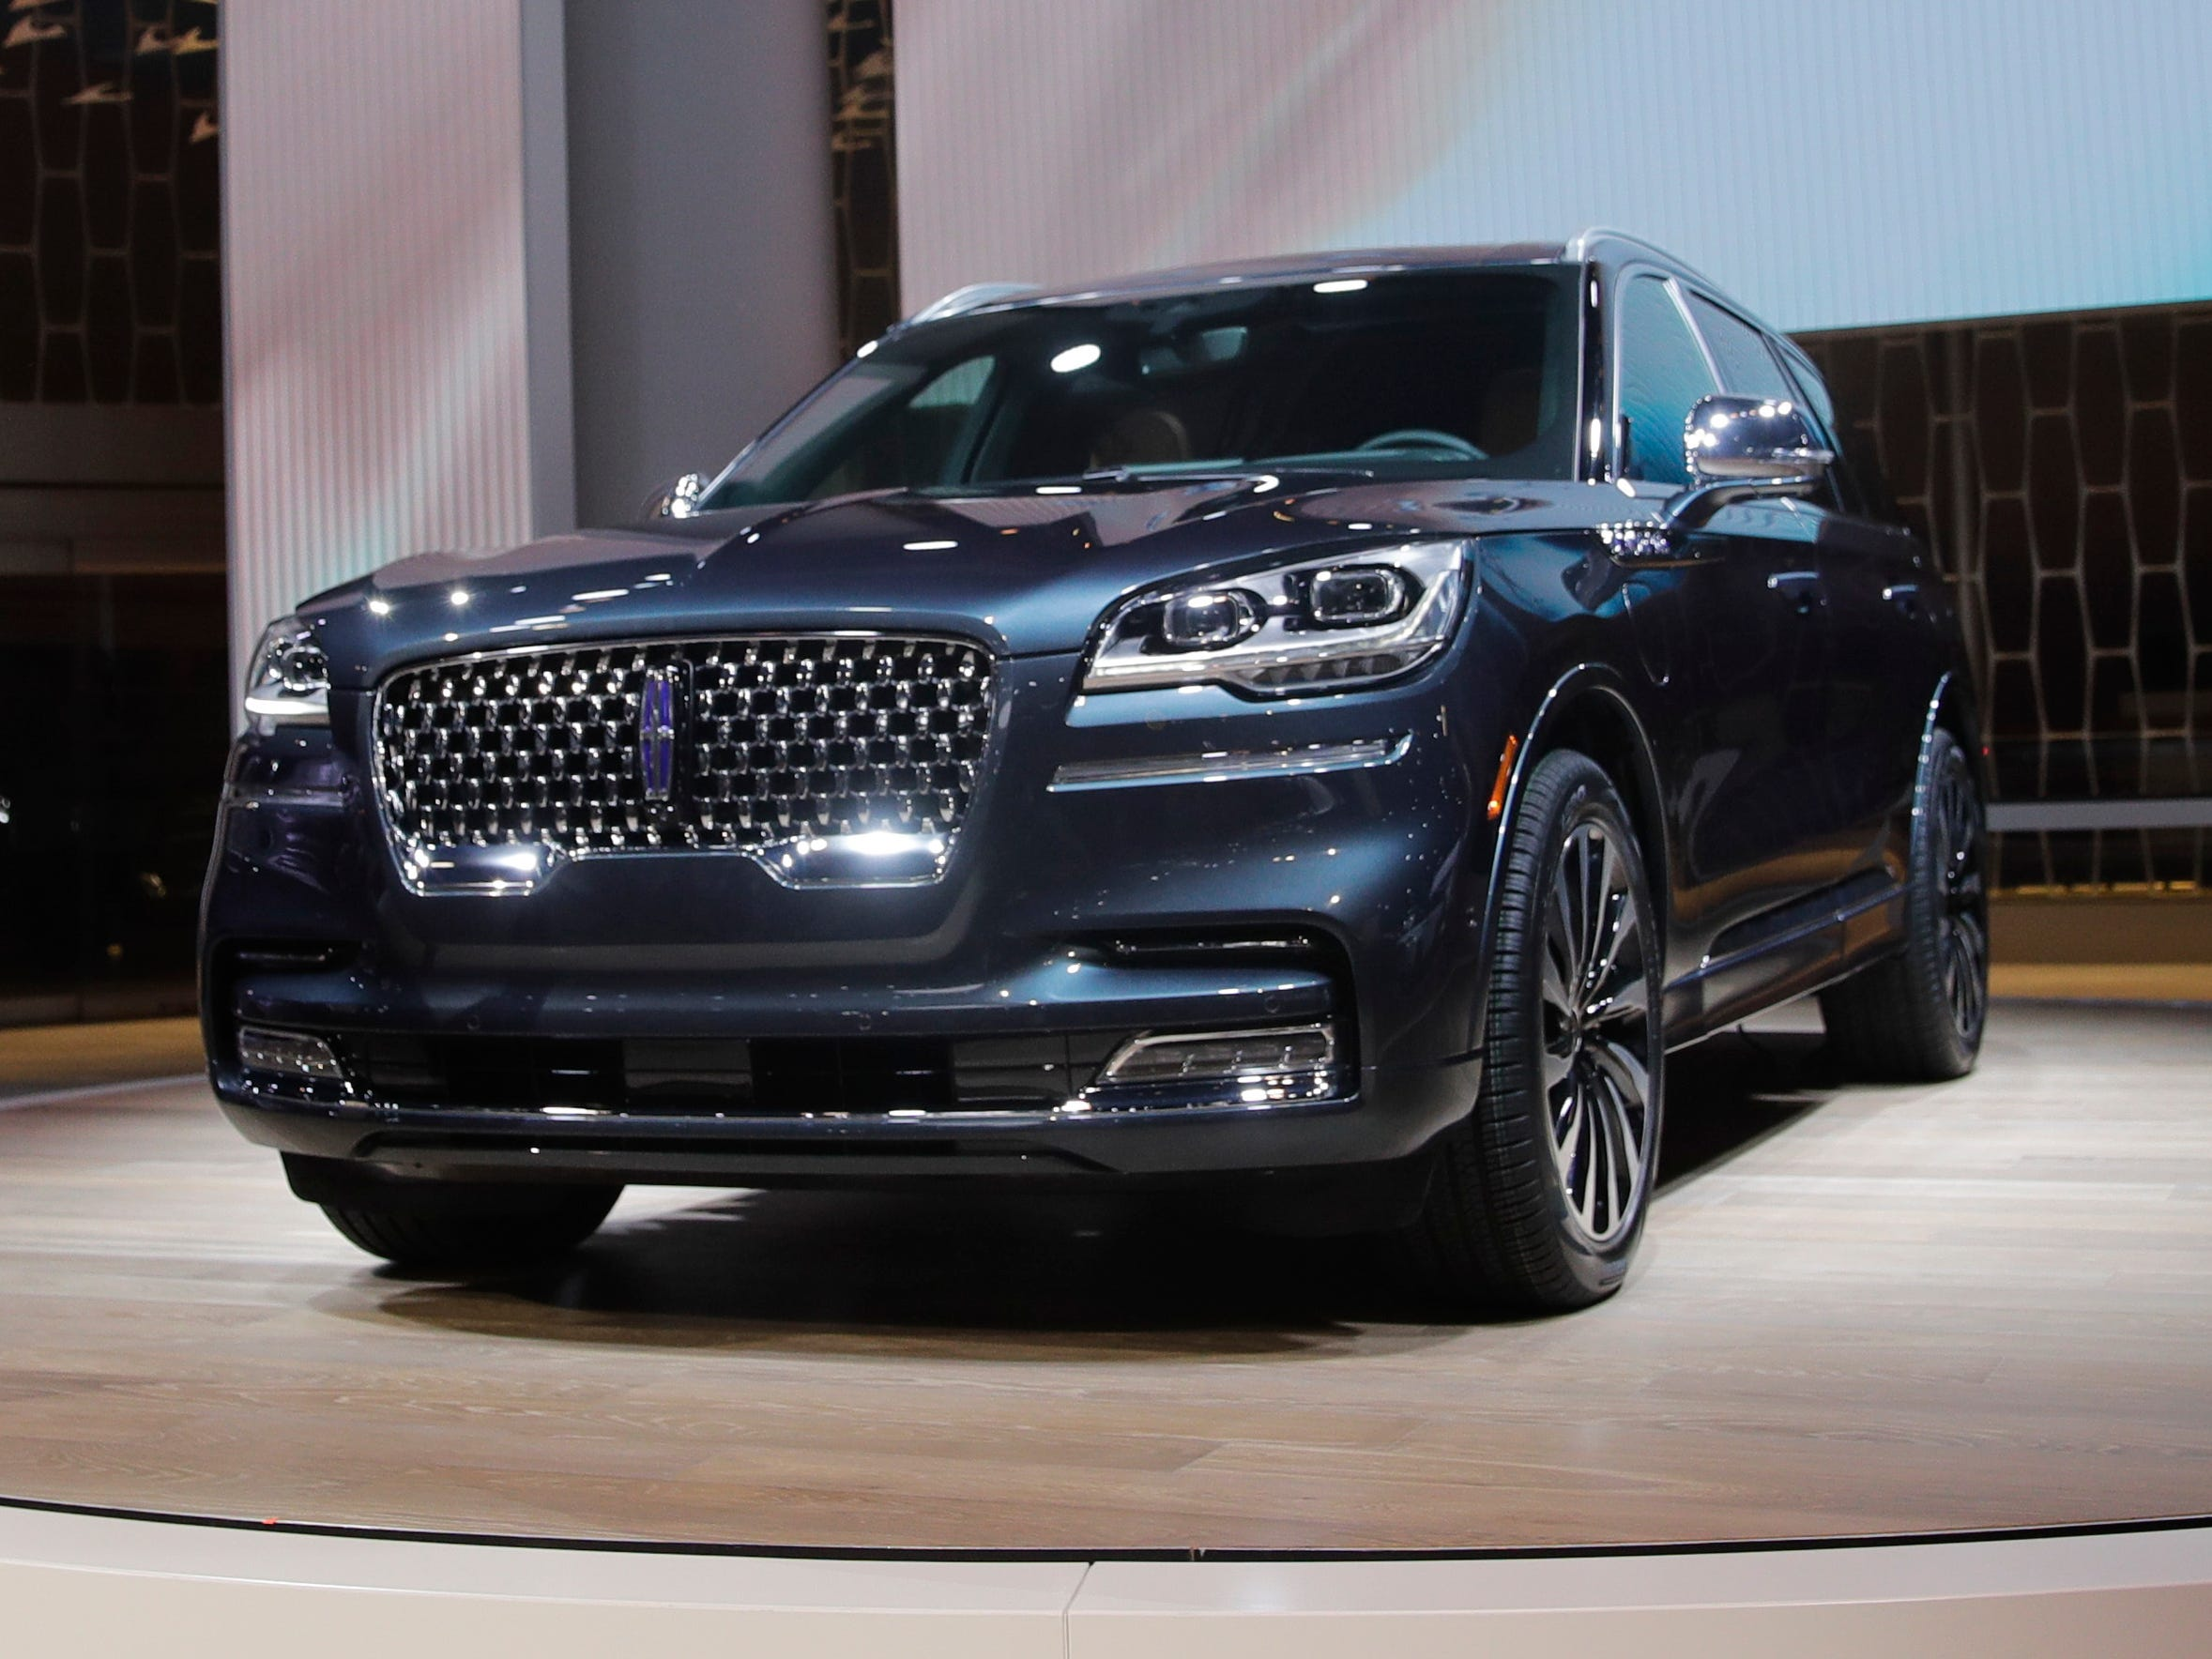 The 2020 Lincoln Aviator, based on a rear-wheel-drive, unibody platform, is introduced at the Los Angeles Auto Show. The hybrid version sports a stonkin' 600 pound feet of torque.